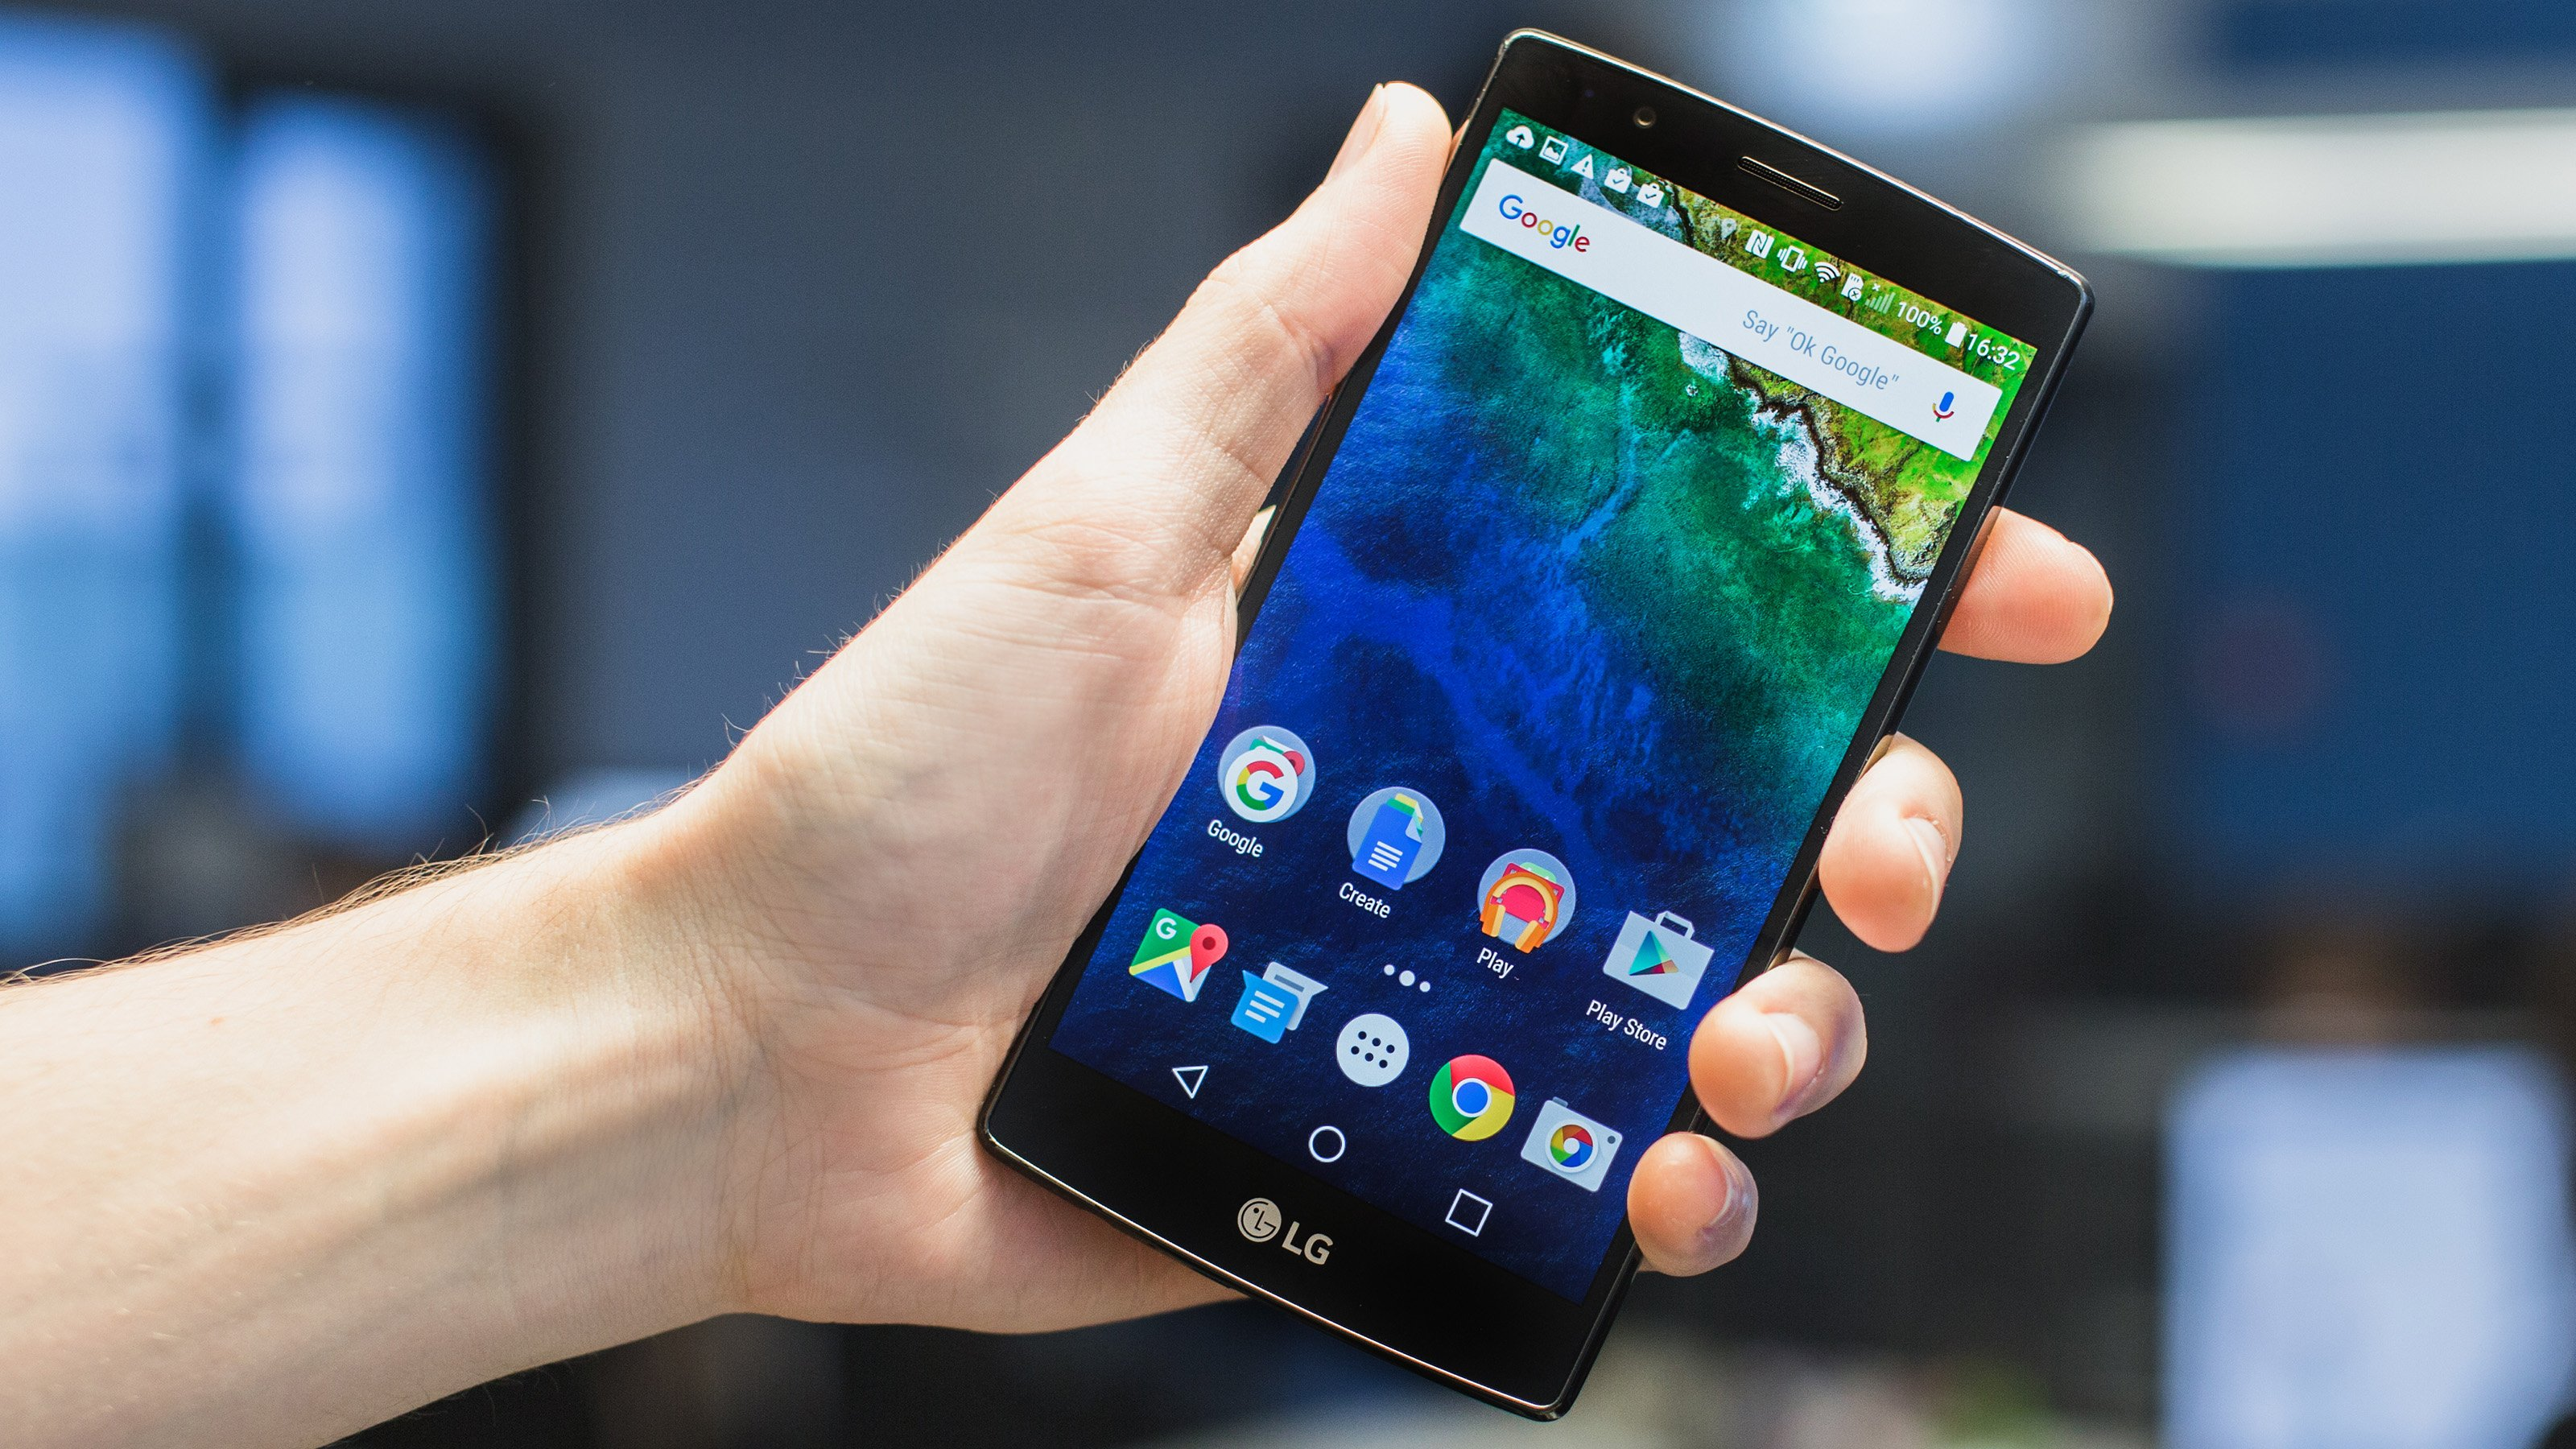 How To Get A Stock Android Experience On Any Phone Without